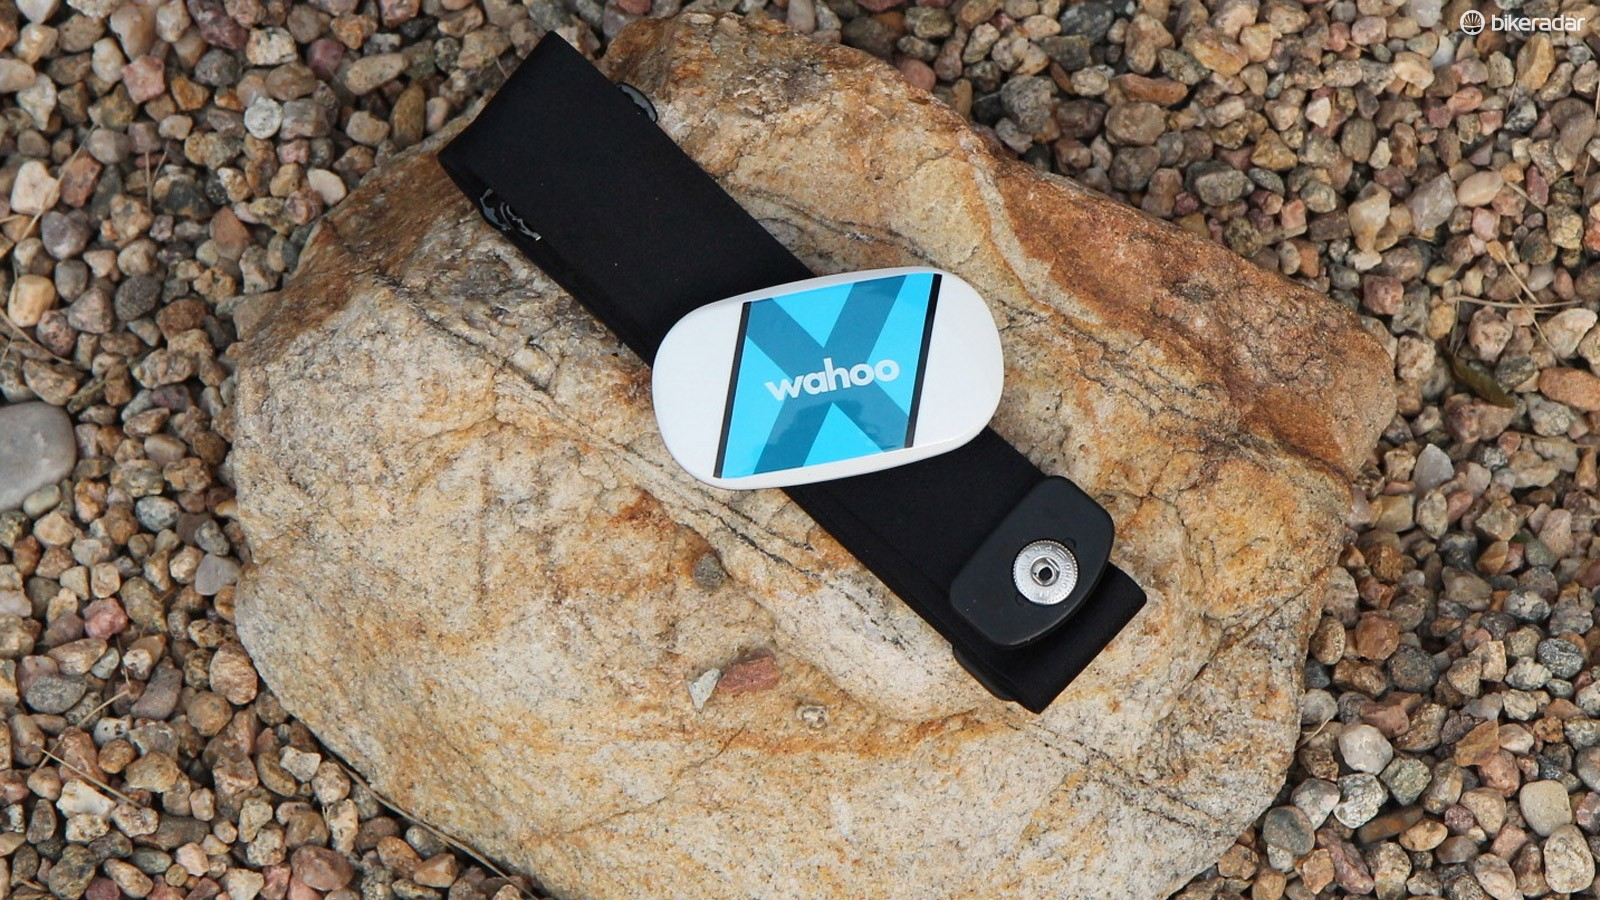 Wahoo's Tickr heart rate monitor can work without a computer or smartphone - then you can download the data later